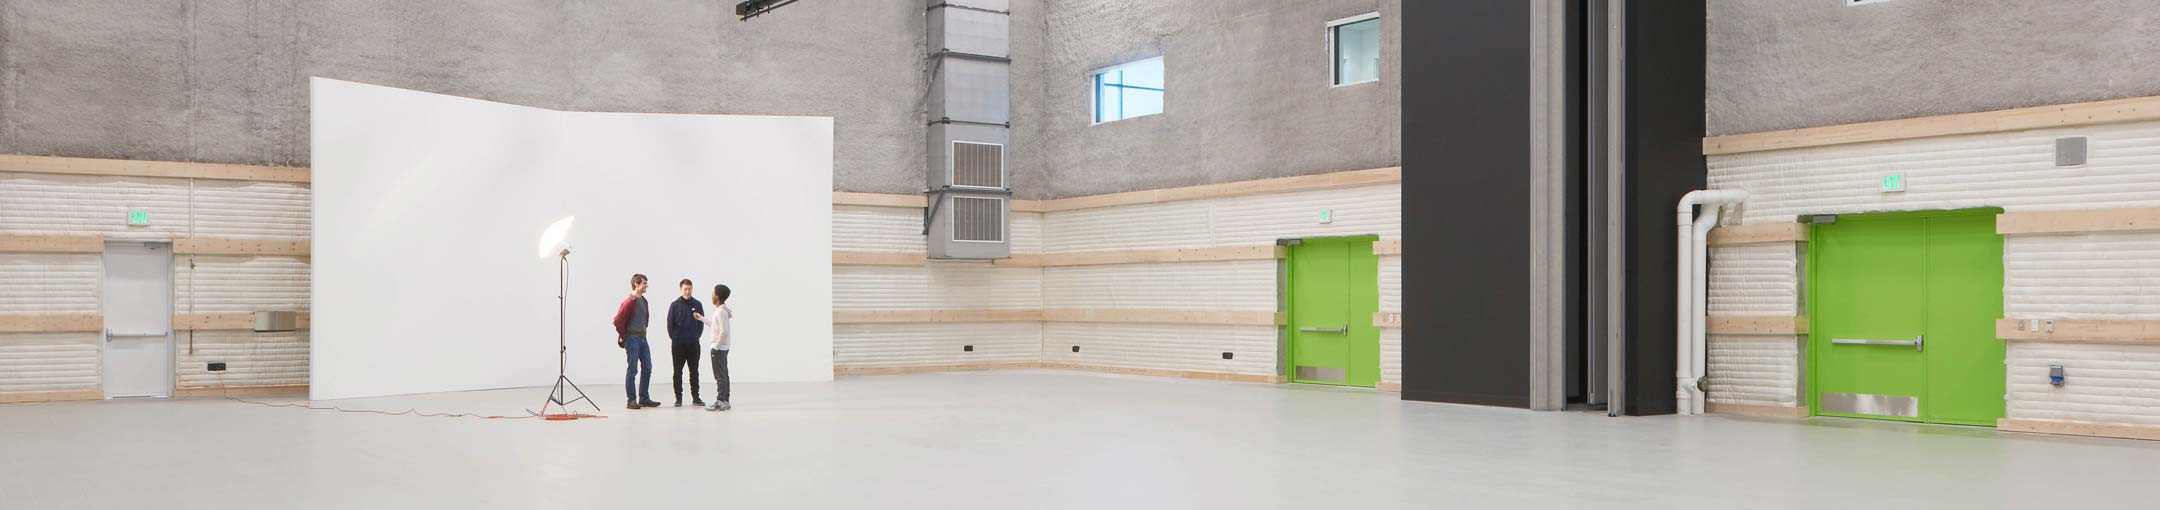 A large, open room with a white backdrop for photography with bright green doors